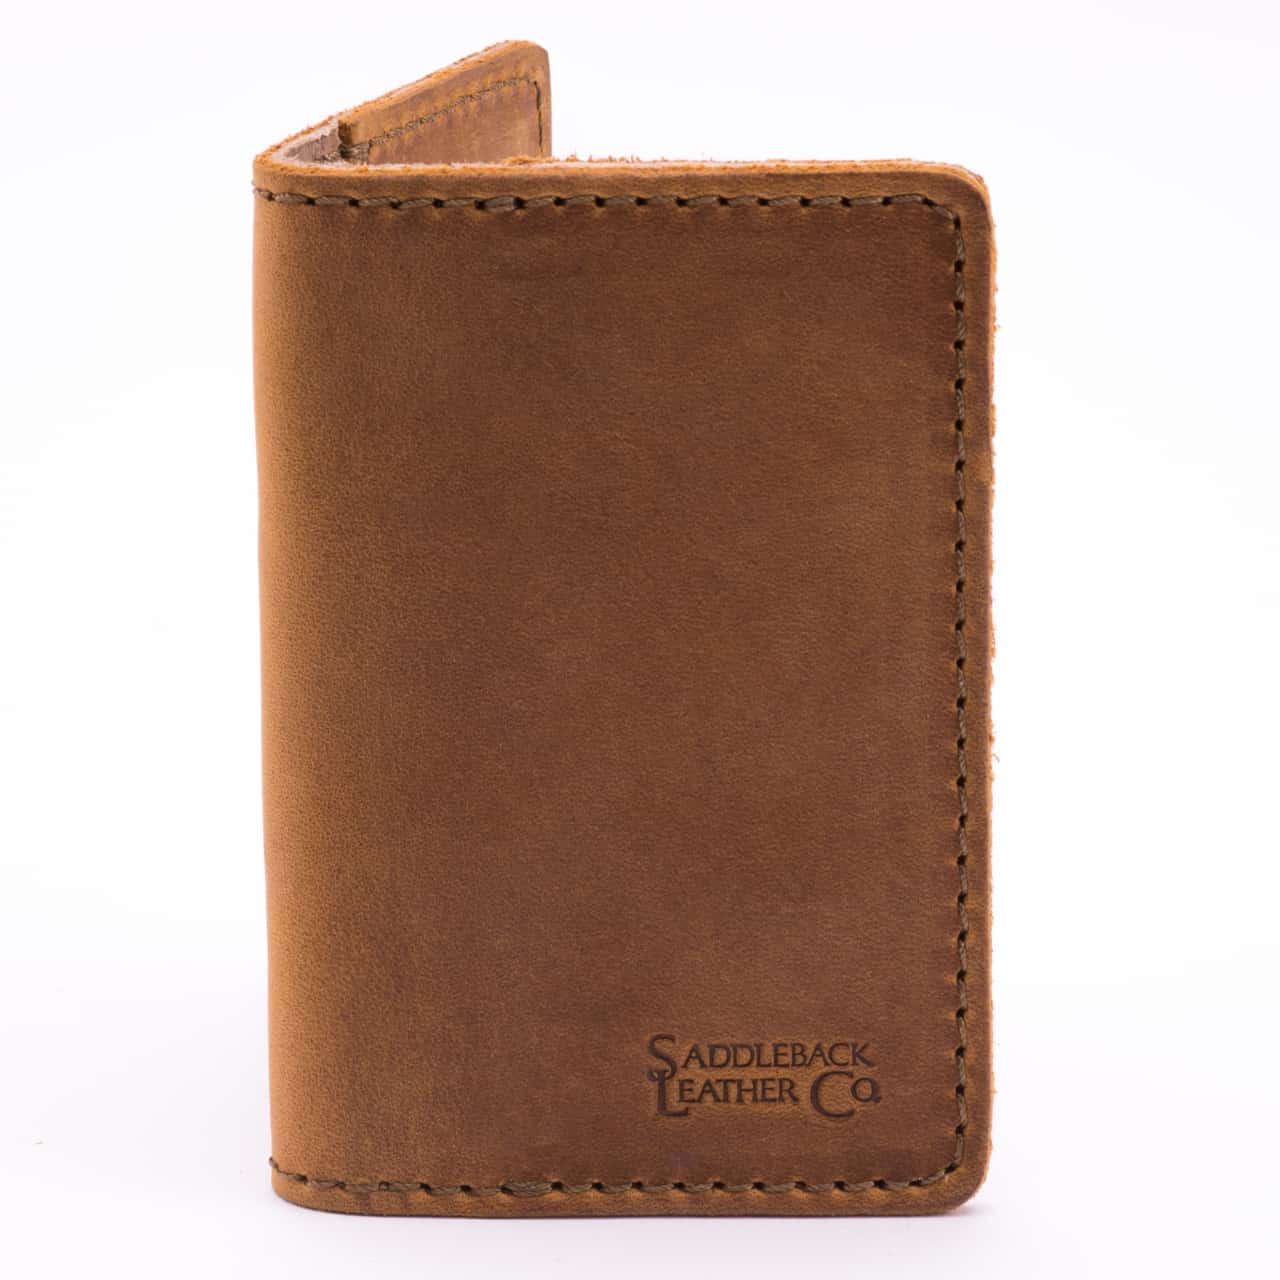 Leather Business Card Wallet, Full-Grain Leather